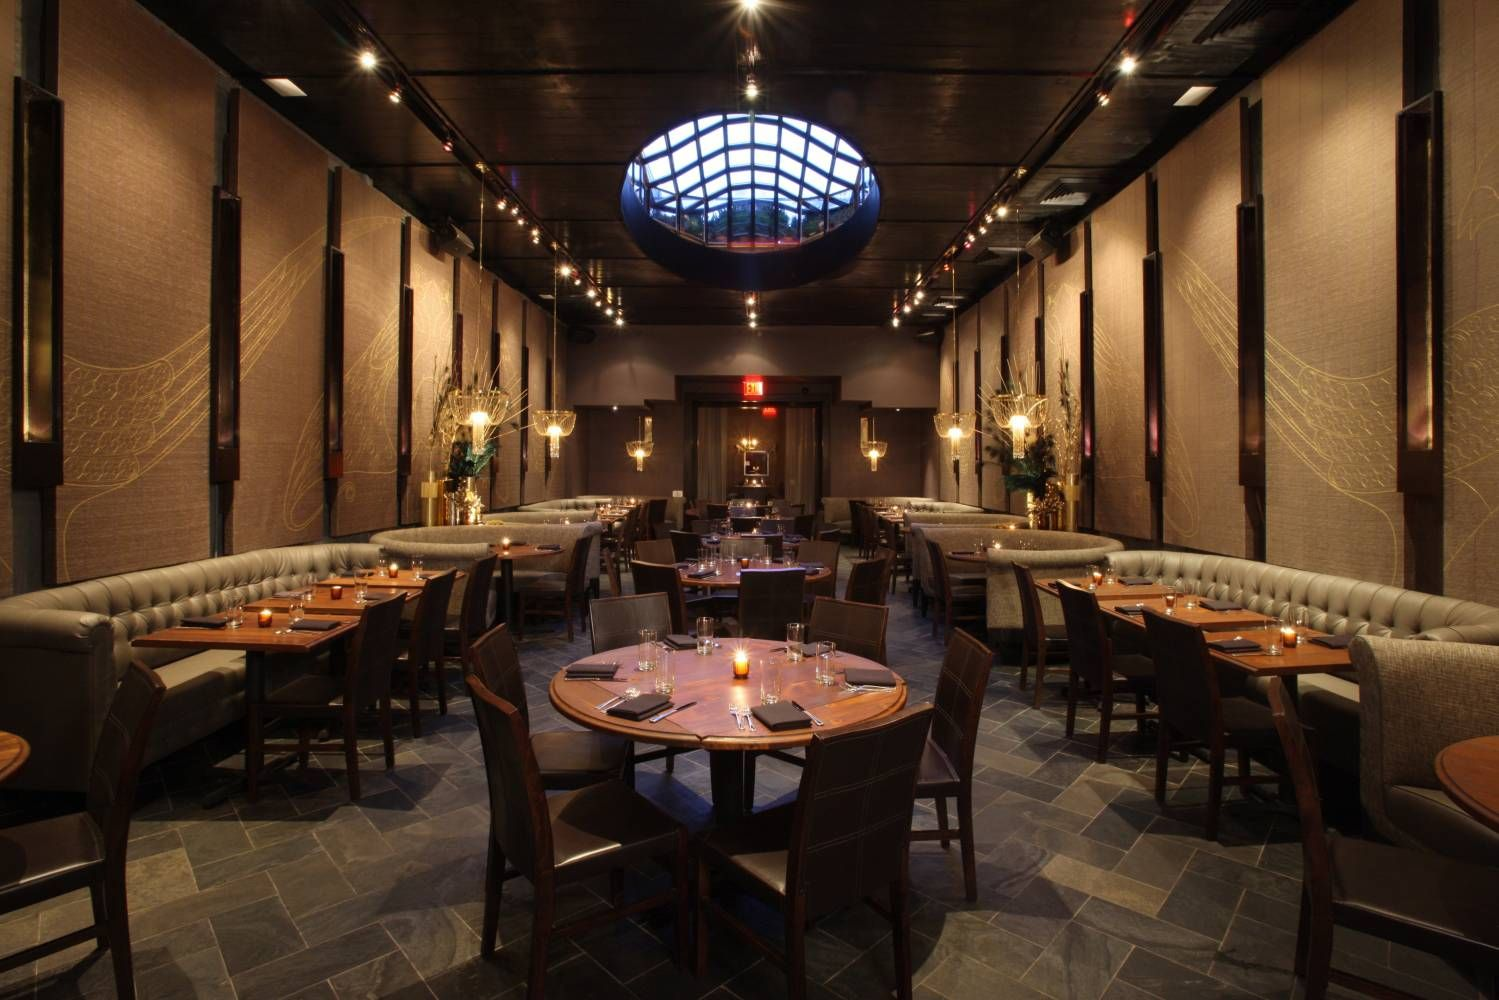 Nyc restaurant week 2017 20 of the best deals for lunch for Abc kitchen restaurant week menu